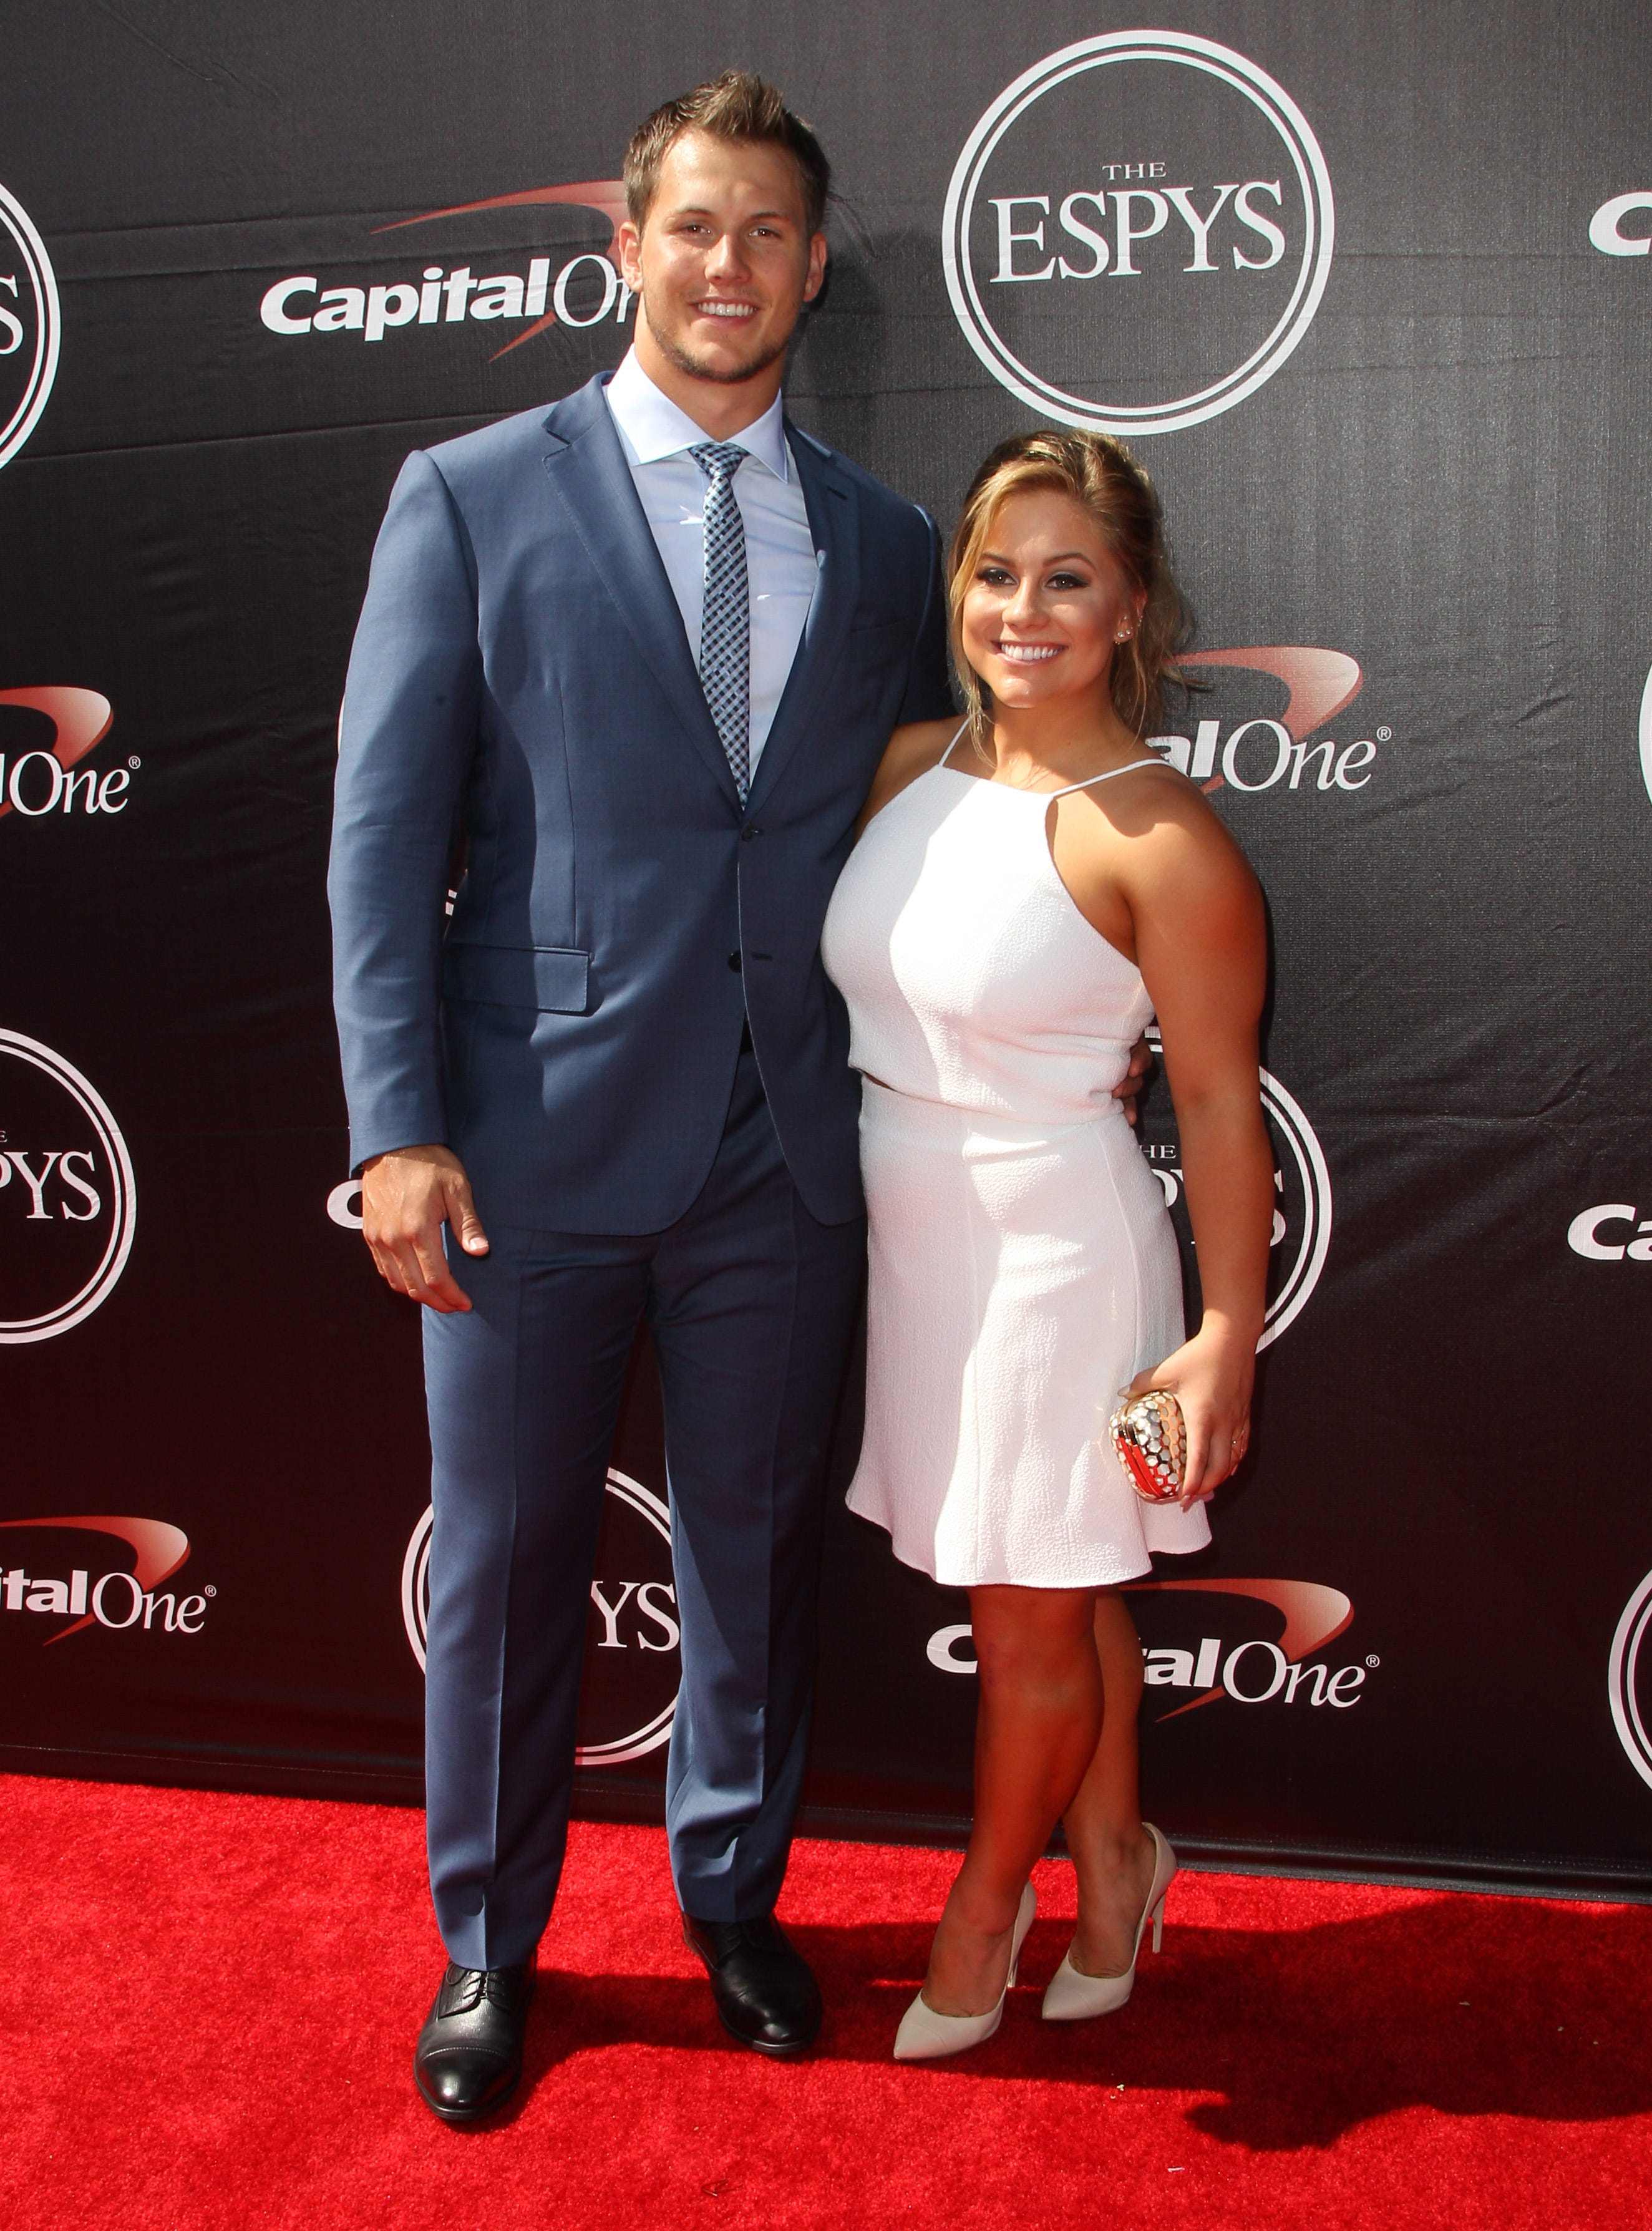 Former Olympian Shawn Johnson shares heartbreaking story of miscarriage